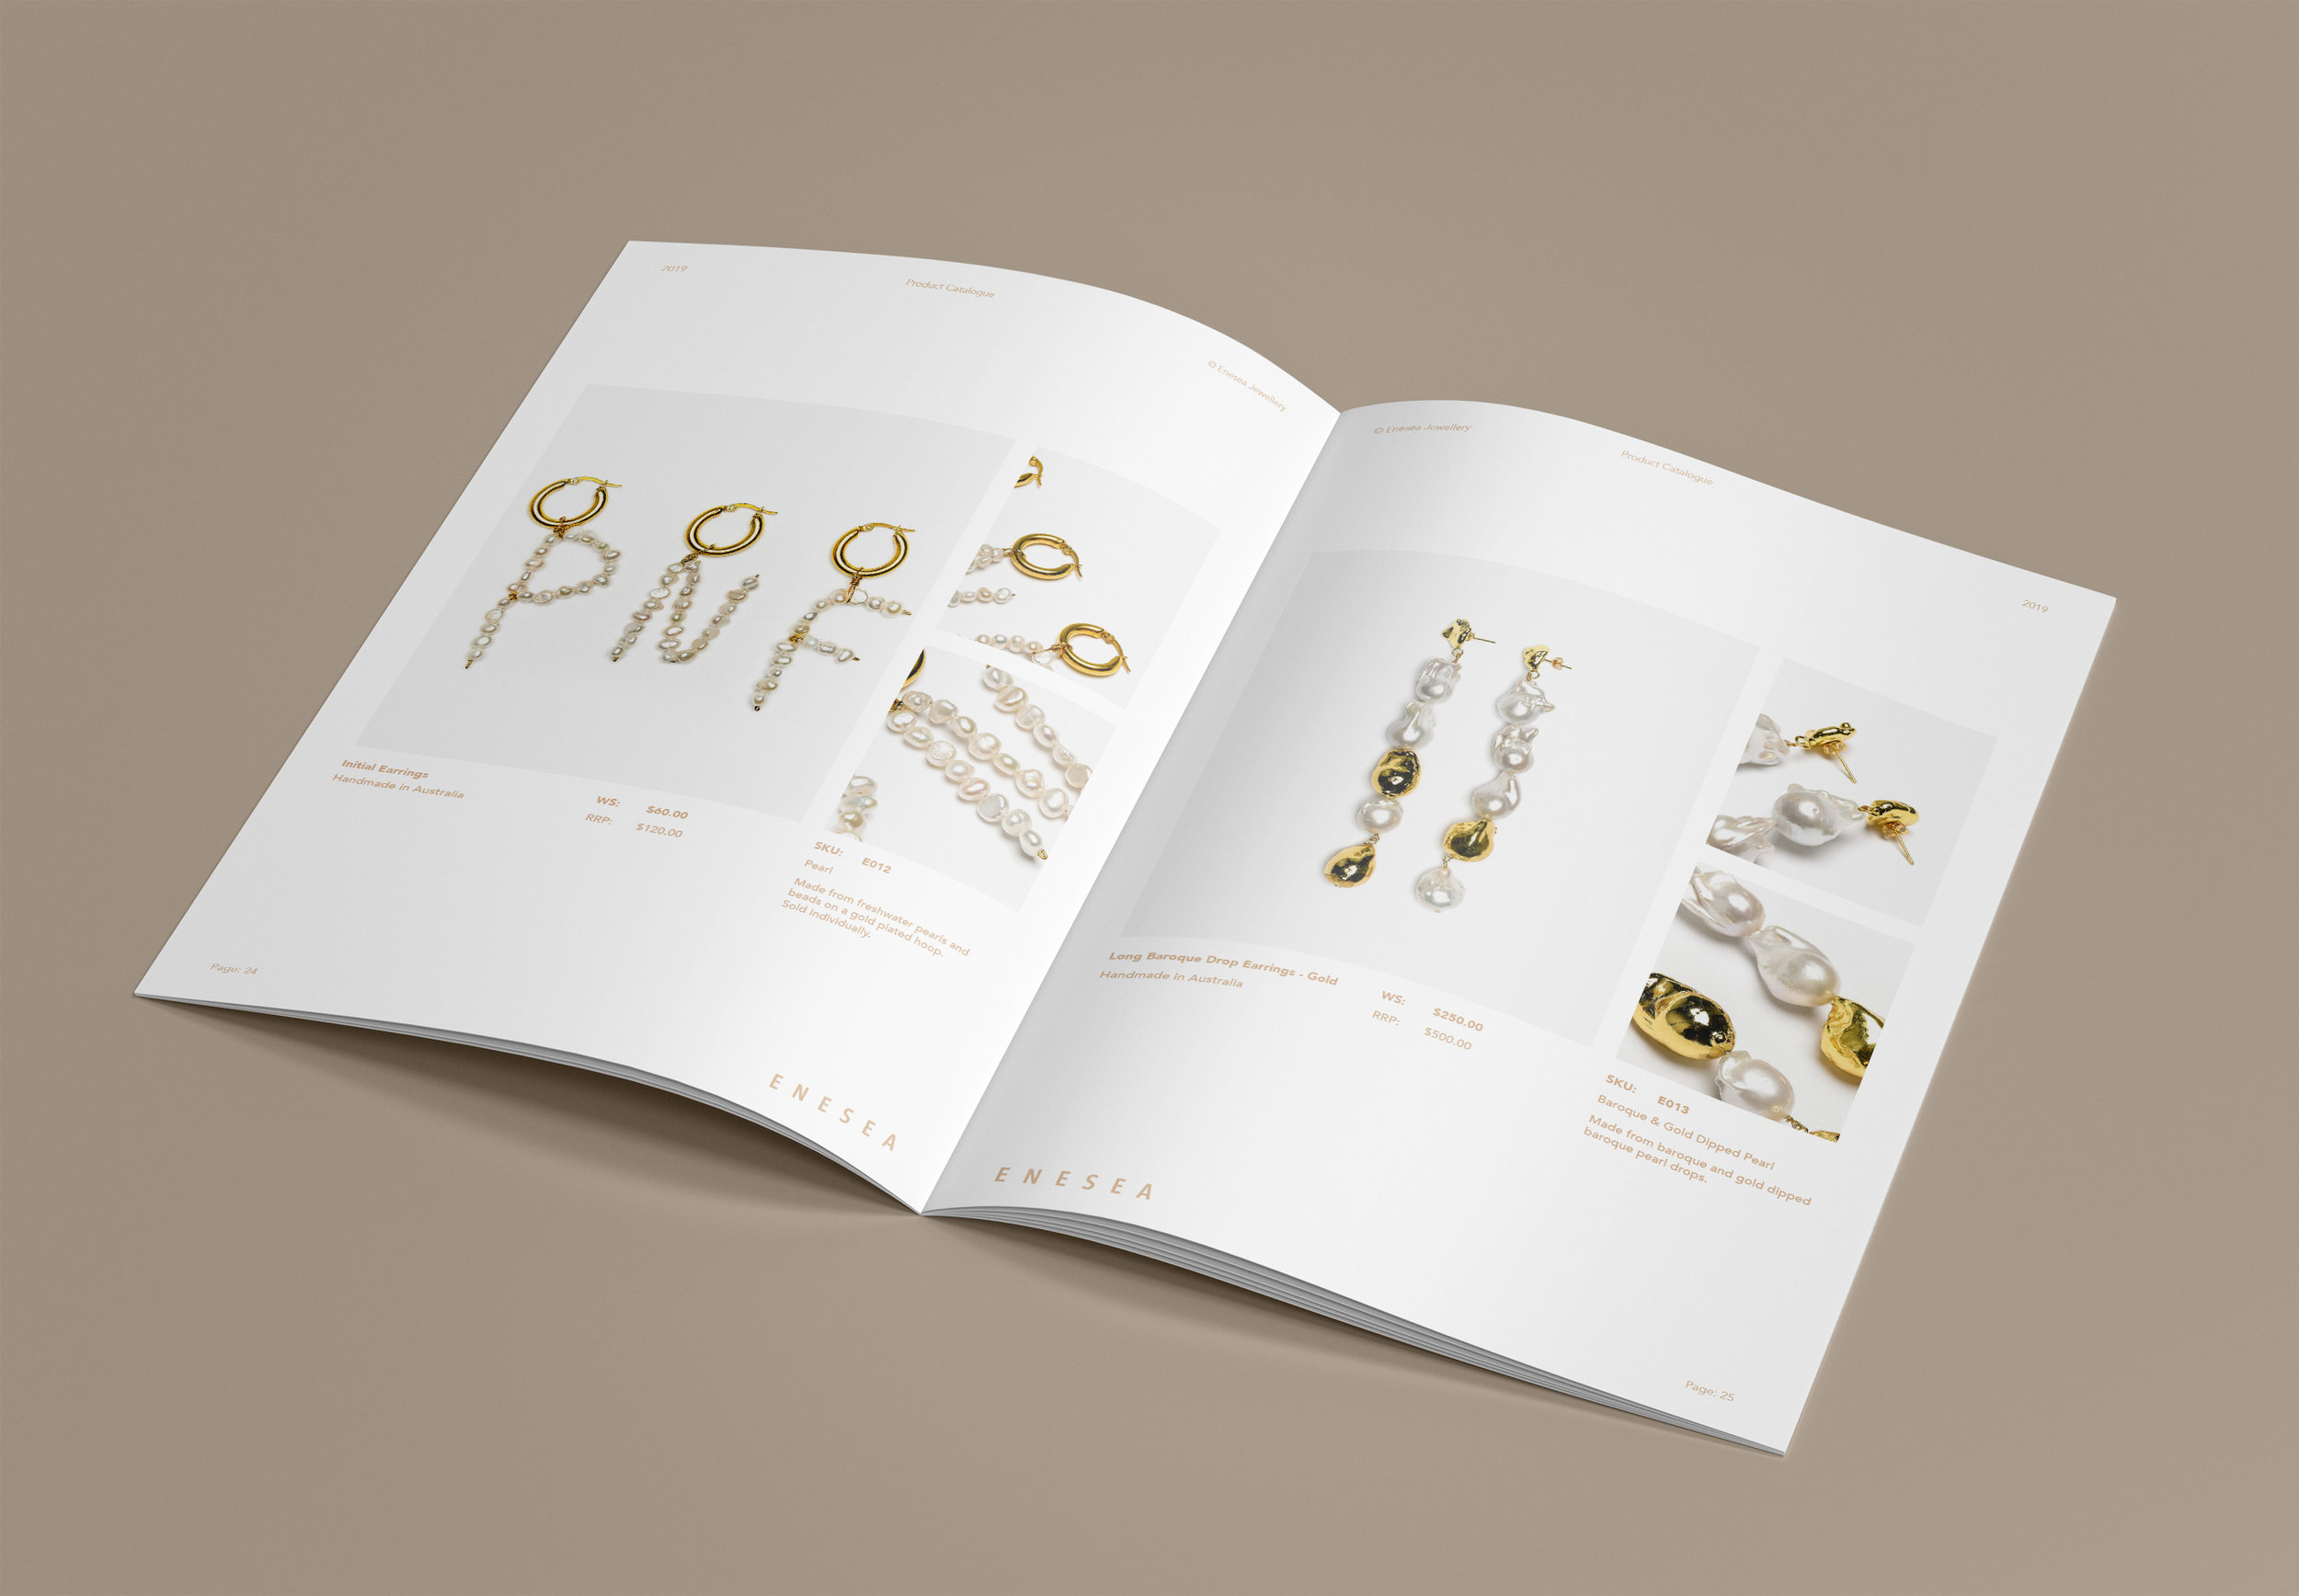 Nectar-&-Co-Enesea-Jewellery-Lookbook-Design-Internal-Pages-3.jpg